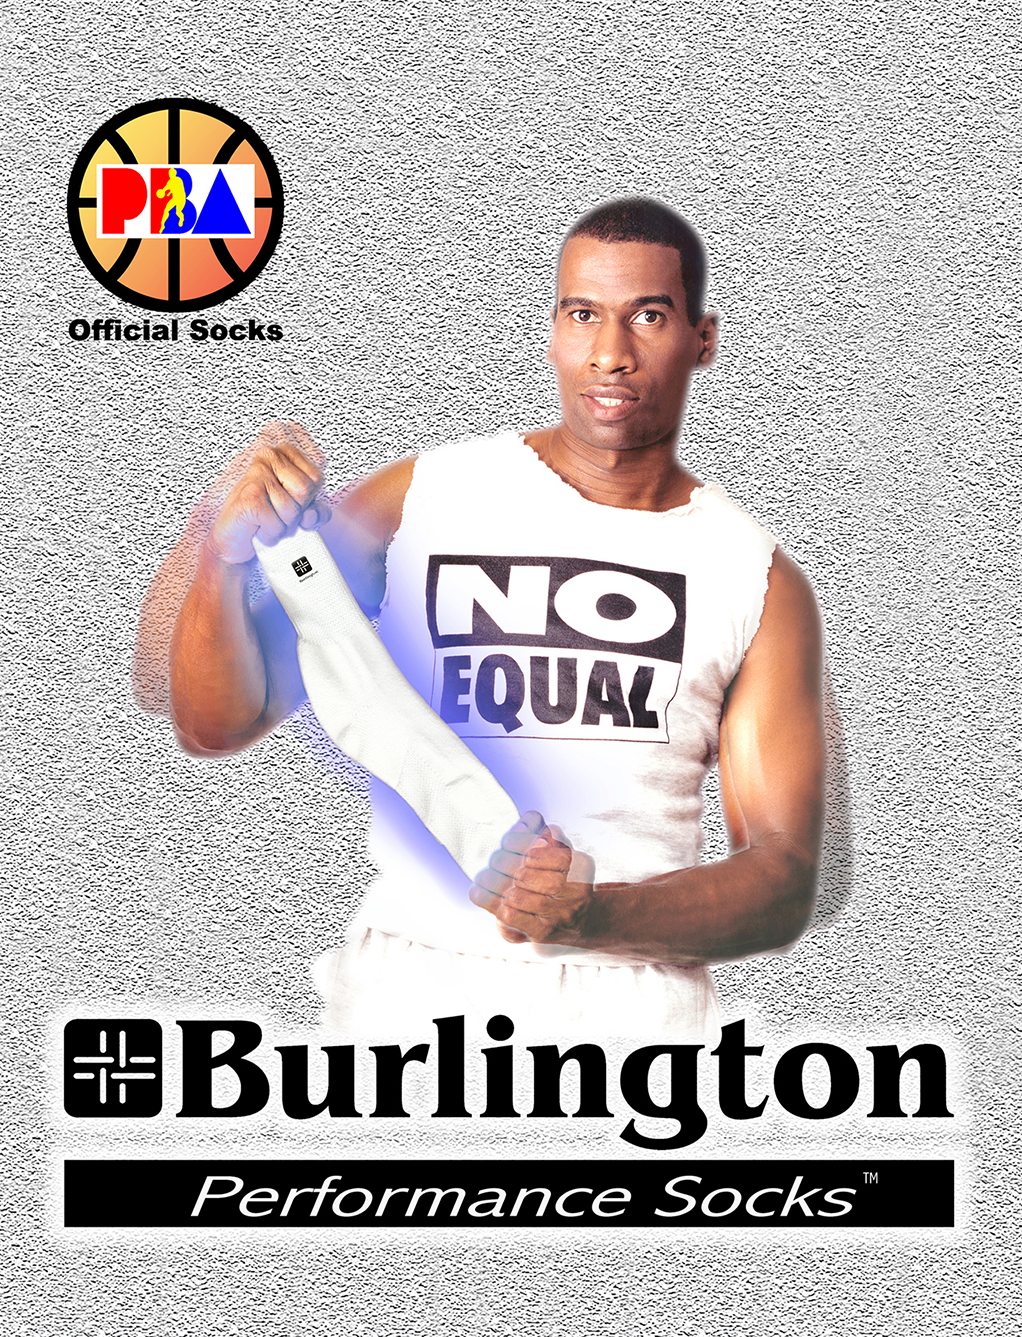 BURLINGTON NORMAN